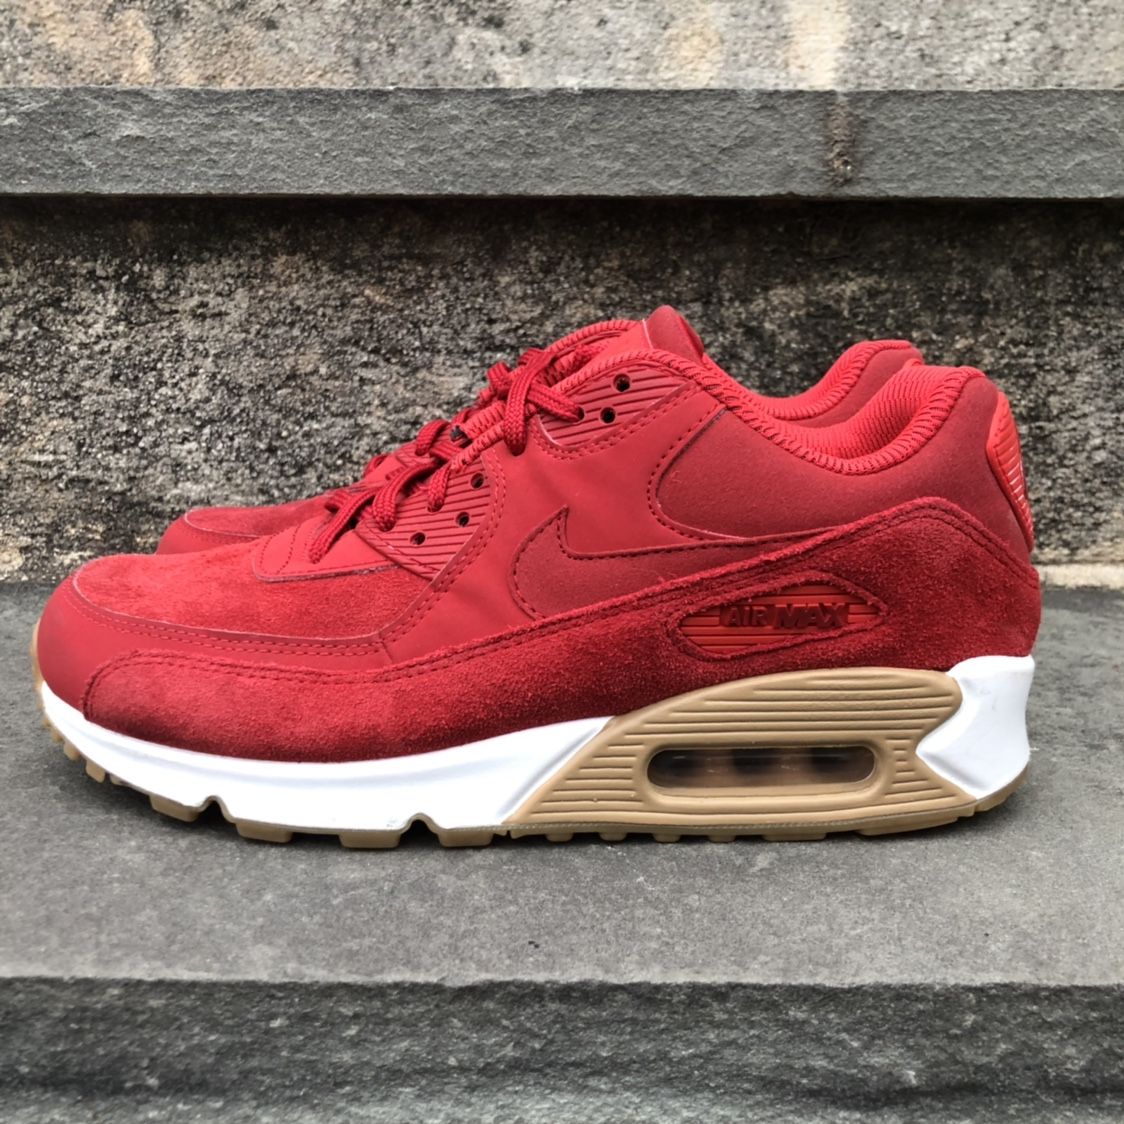 nike air max 90 red suede